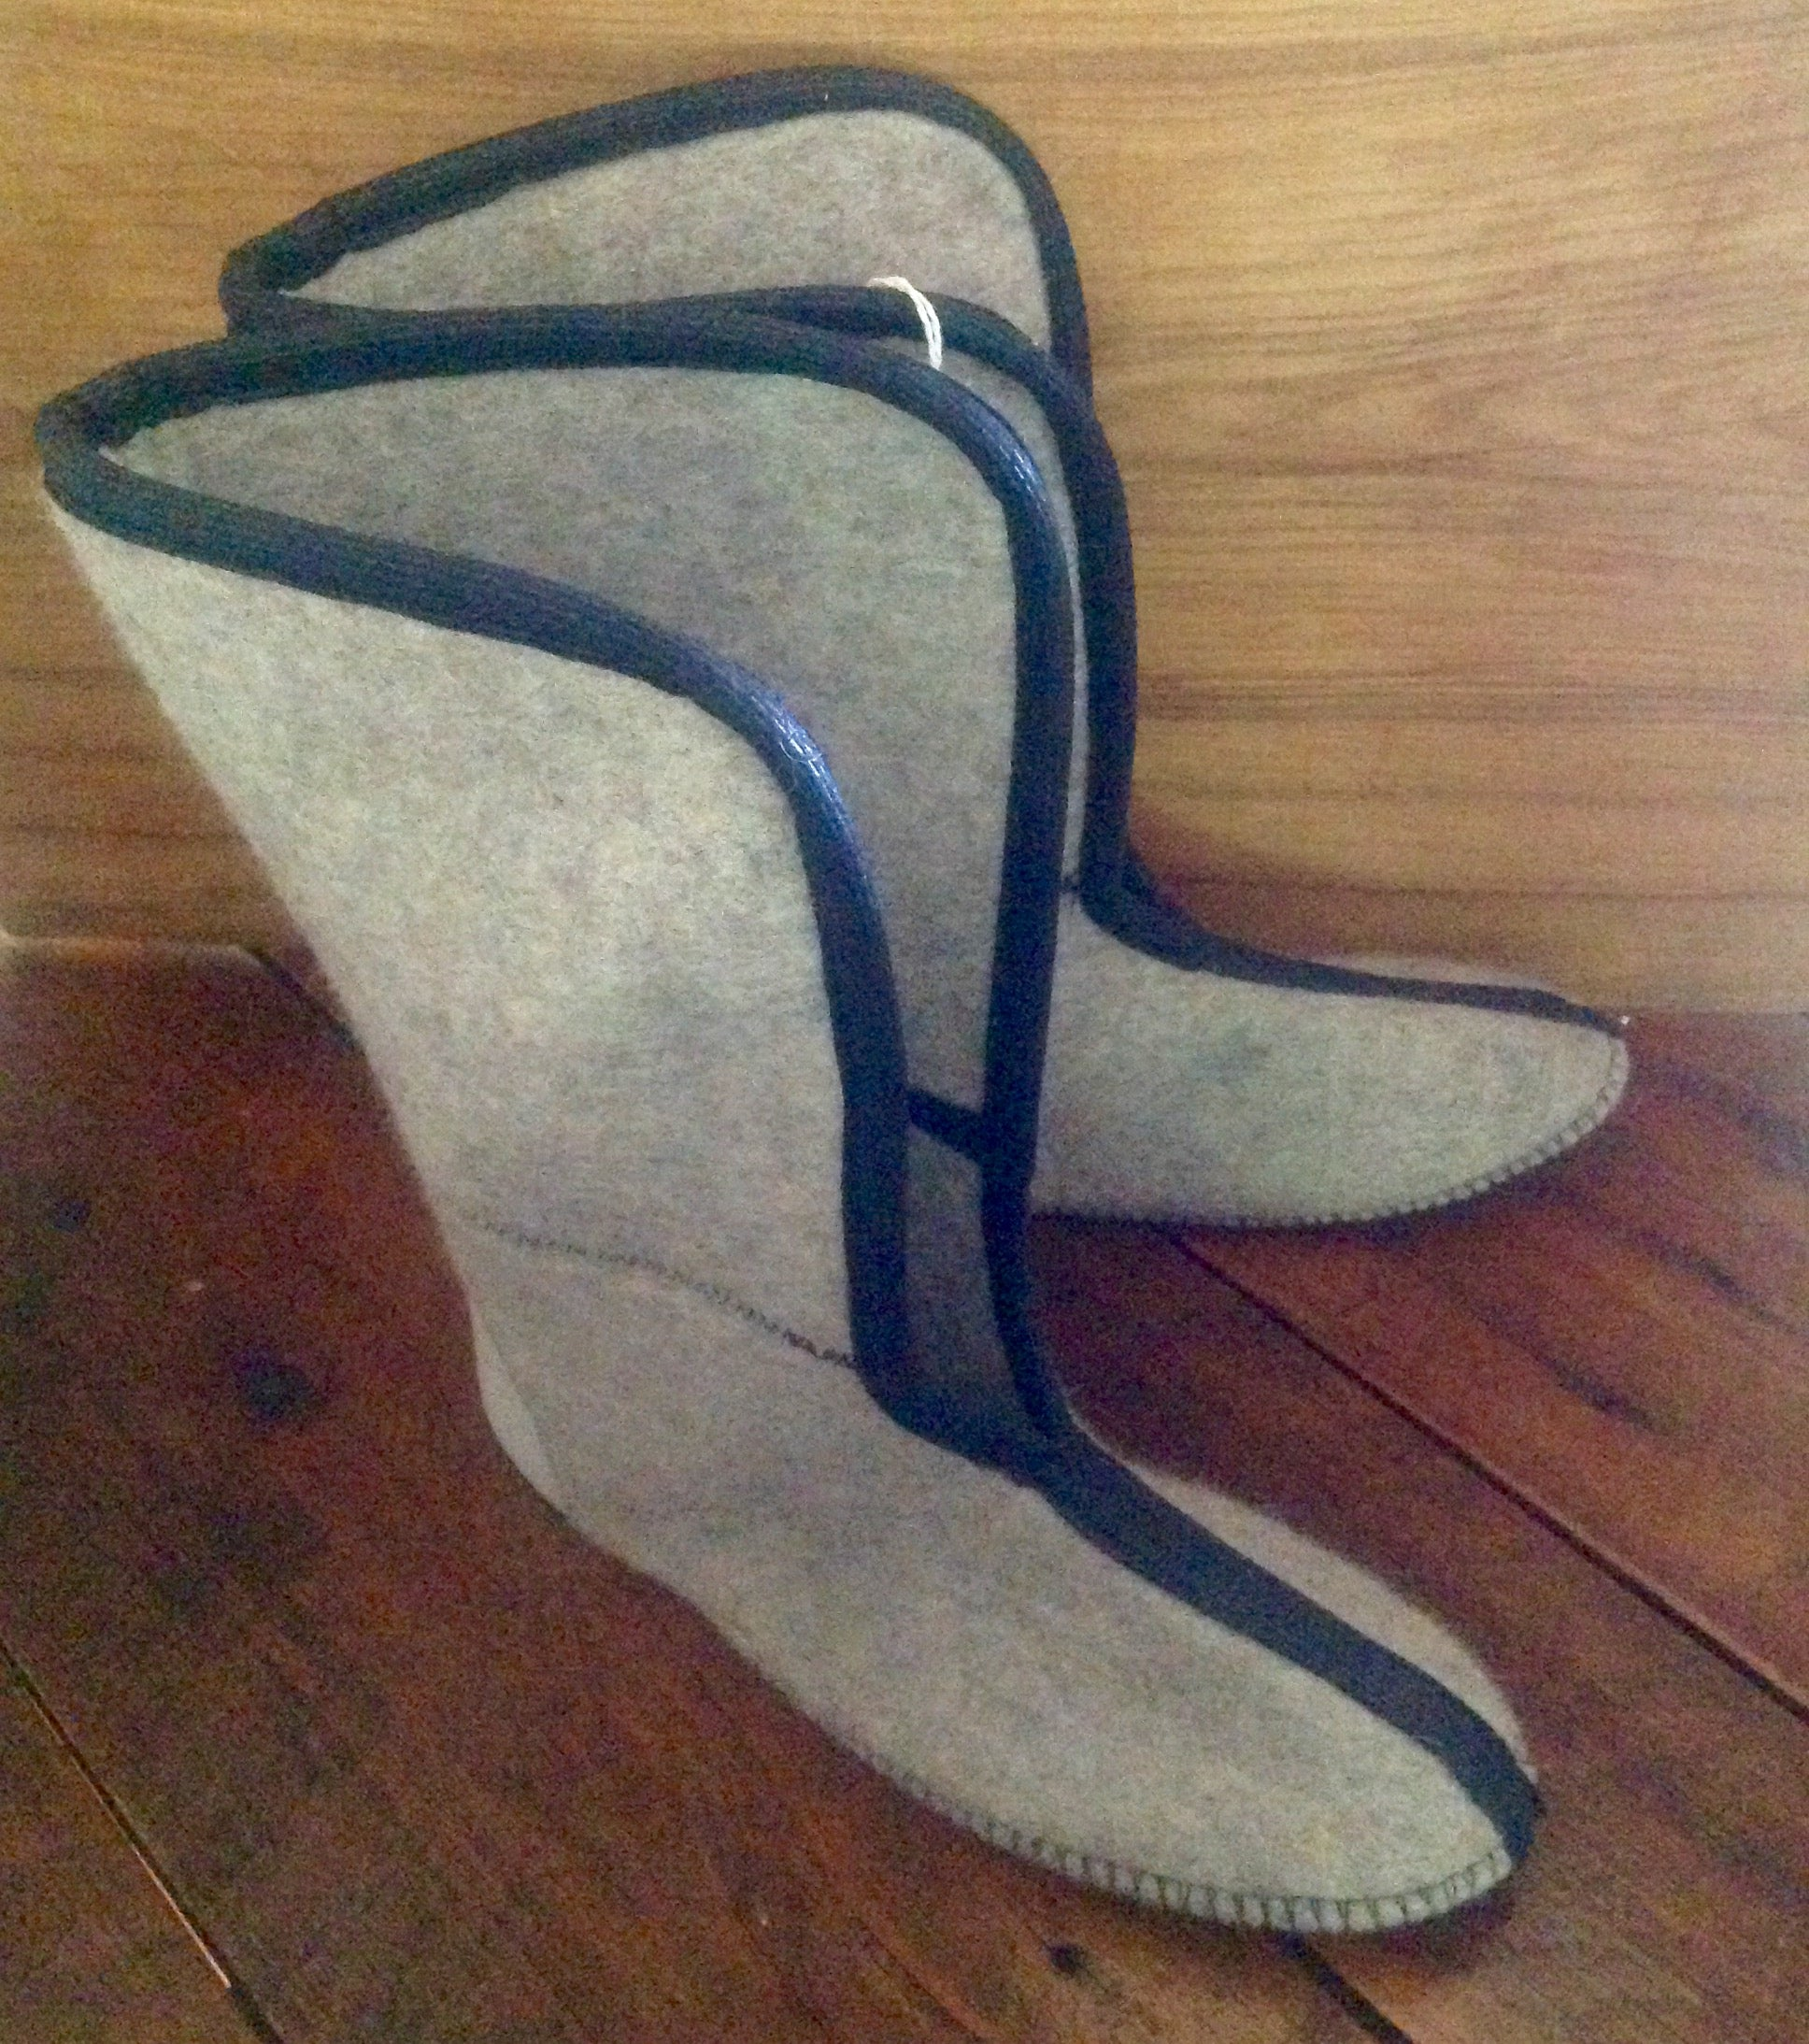 Inserts - Felted Boot